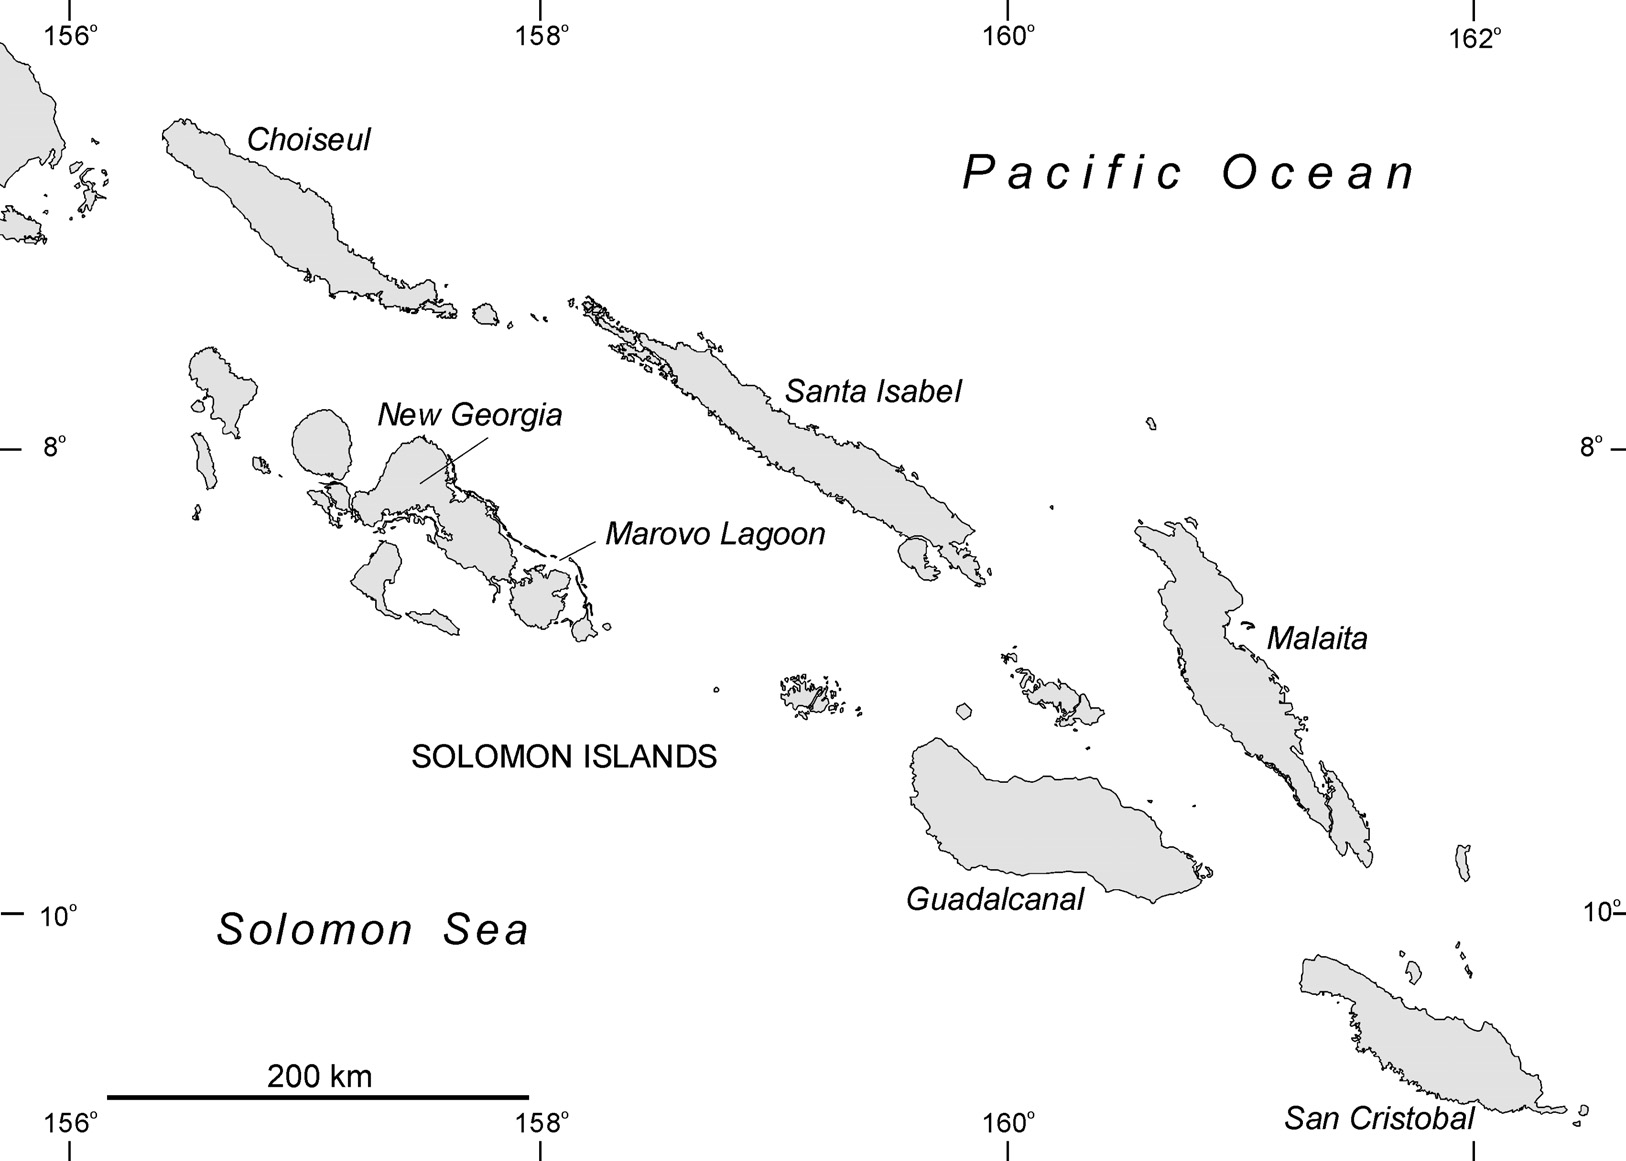 Figure 5.5 Solomon Islands showing place names mentioned in the text.